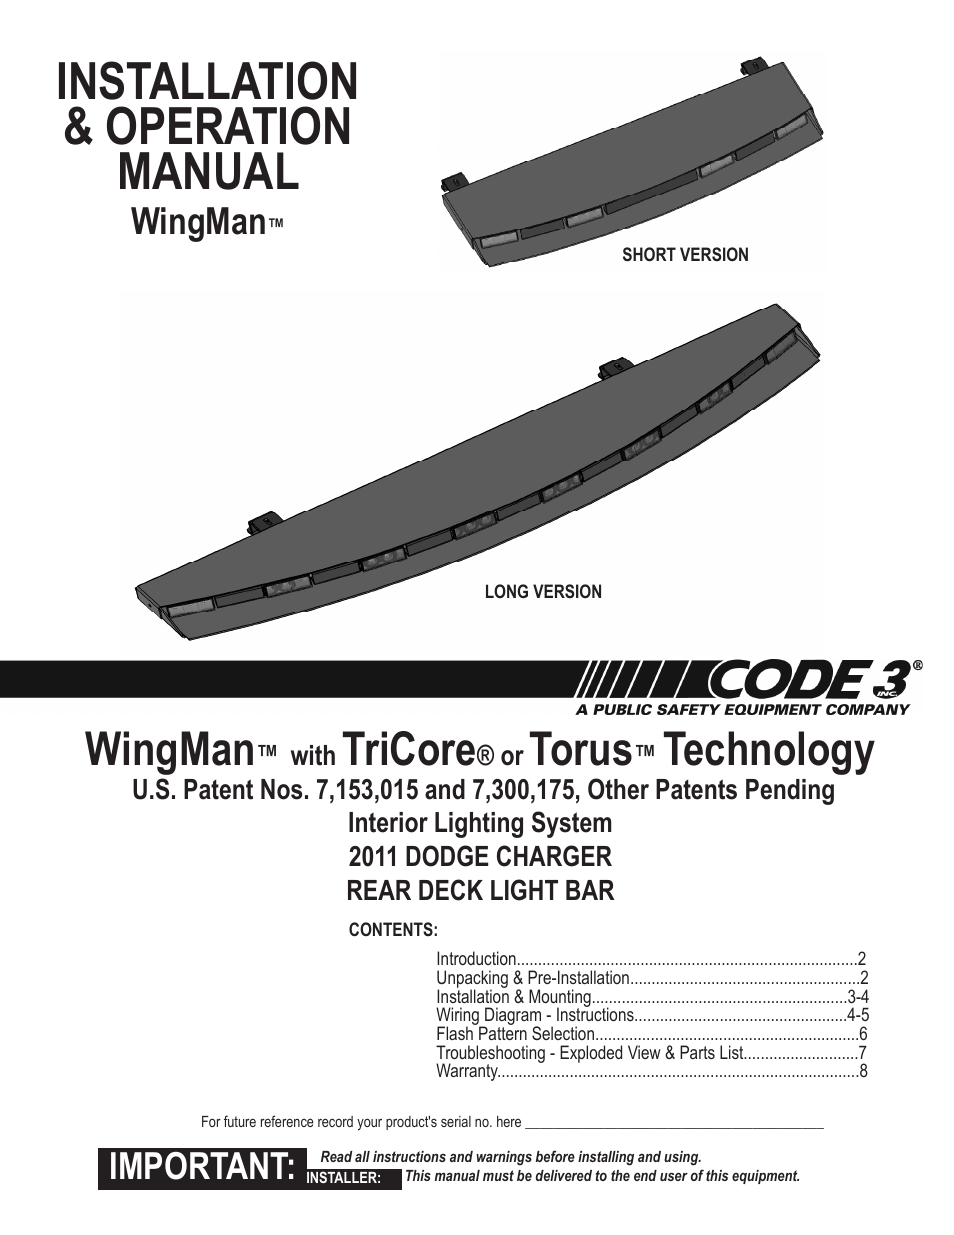 Code 3 Wingman Wiring Diagram Complete Diagrams Mx7000 Light Bar With Tricore Torus For Charger User Manual 8 Pages Rh Manualsdir Com Lp6000